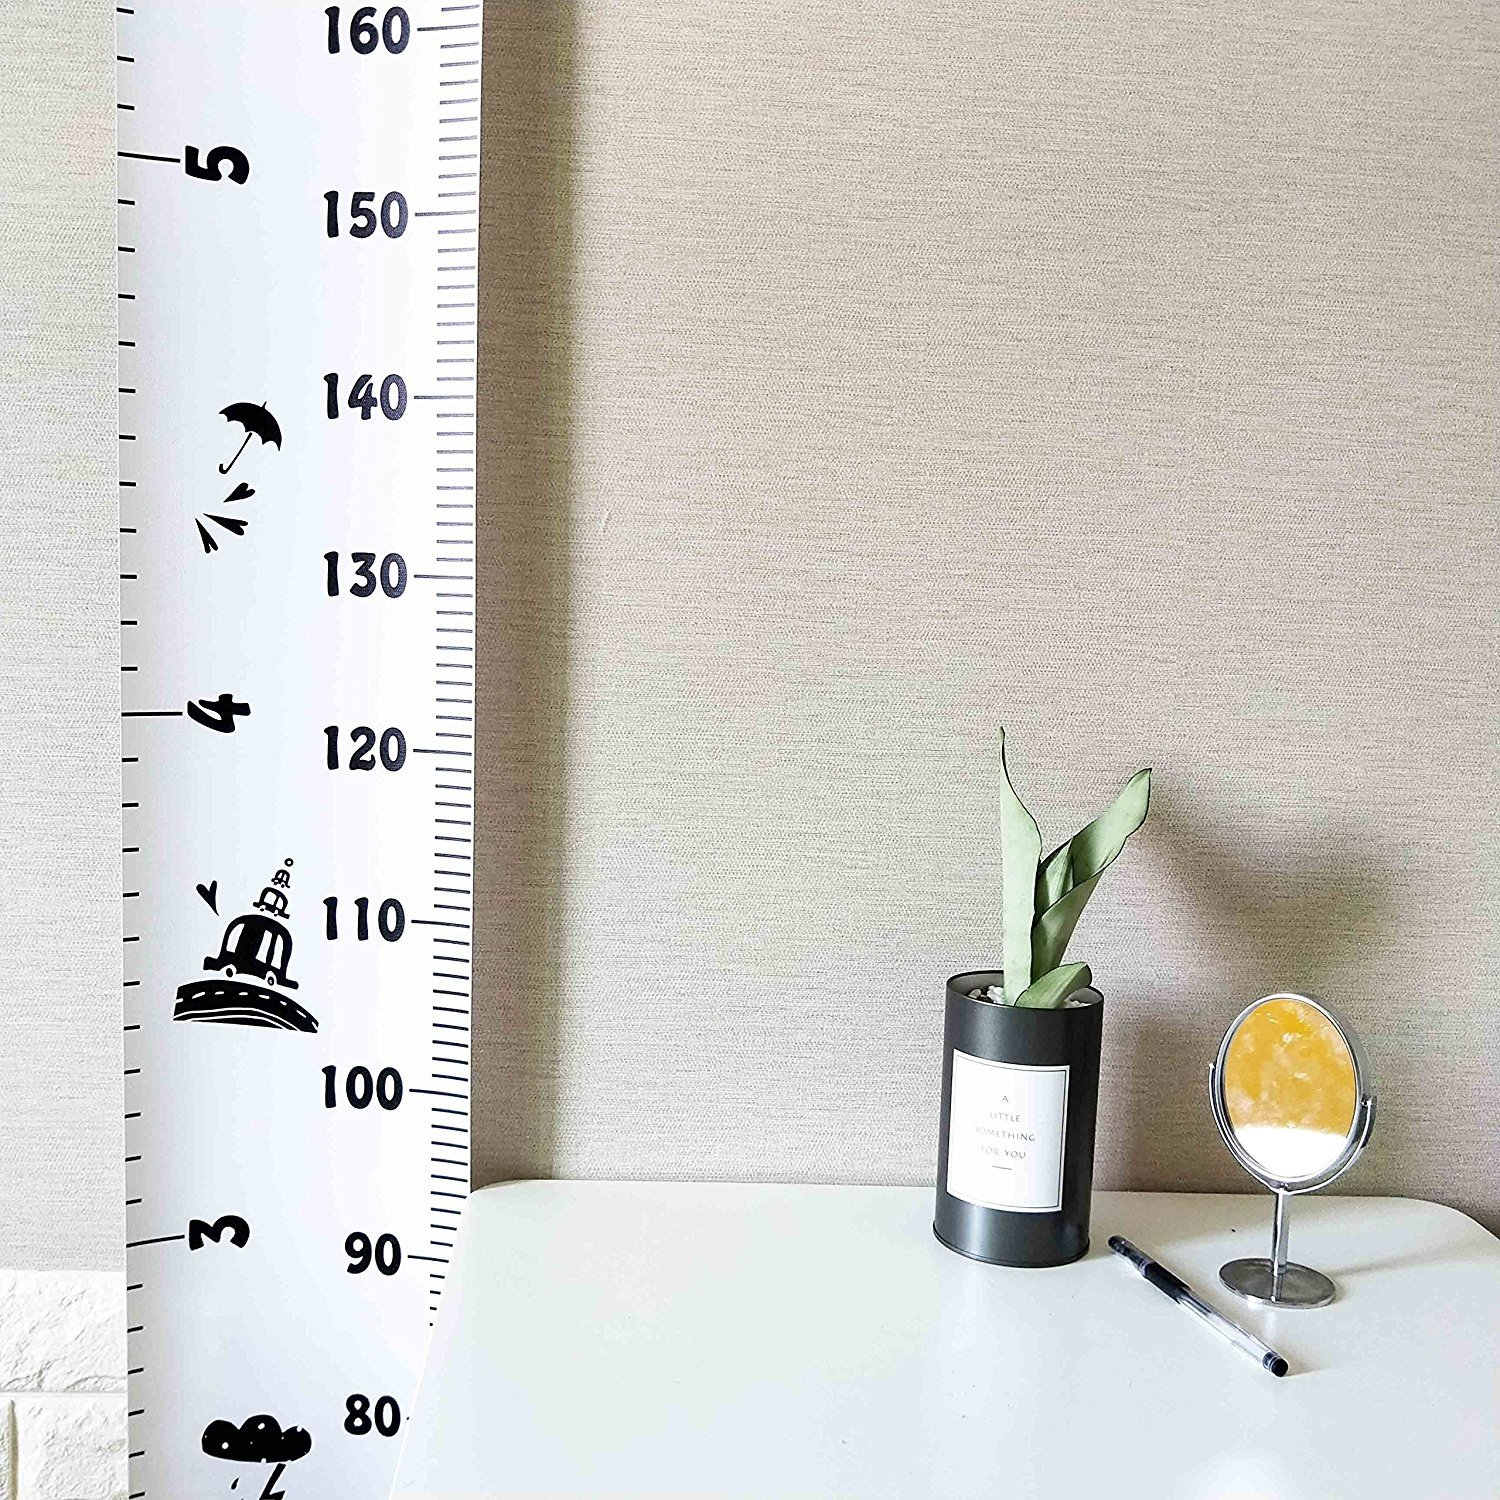 7.9 x 79in, Flamingo Wood Frame Fabric Canvas Height Measurement Ruler from Baby to Adult for Childs Room Decoration 7.9 x 79in Miaro Kids Growth Chart